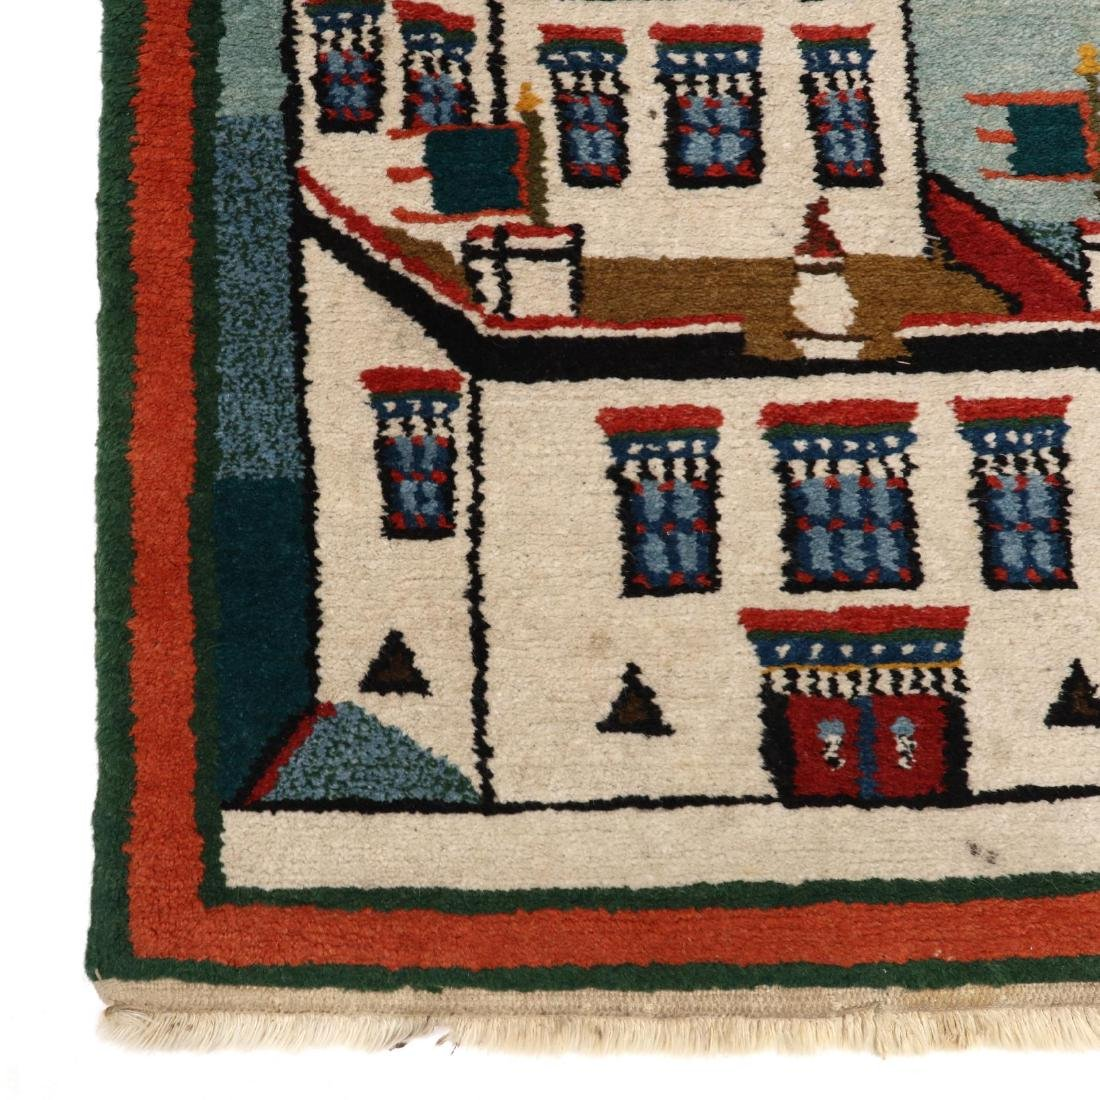 Small Pictorial Rug - 2